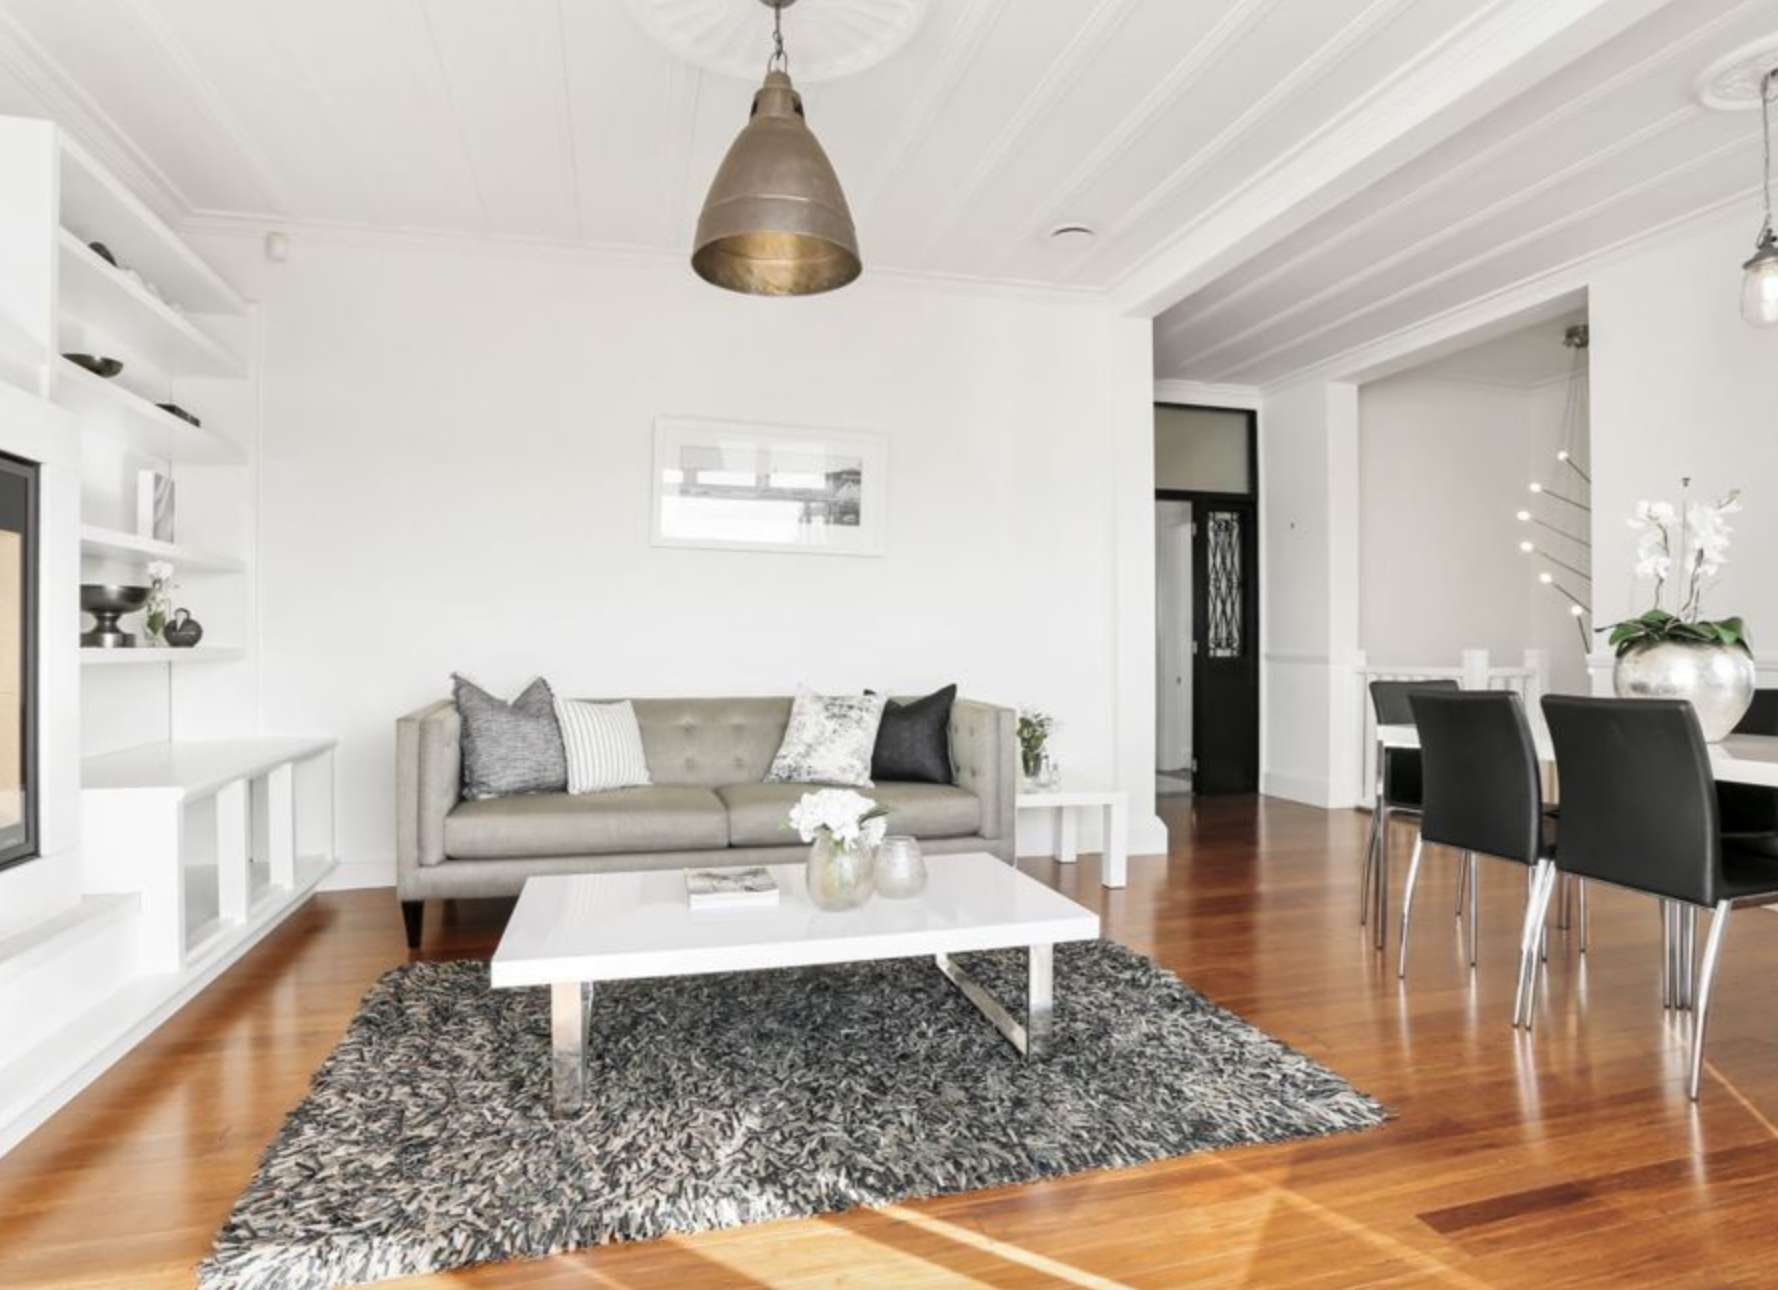 Heritage_character_meets_contemporary_in_Calliope_-_realestate_co_nz.png